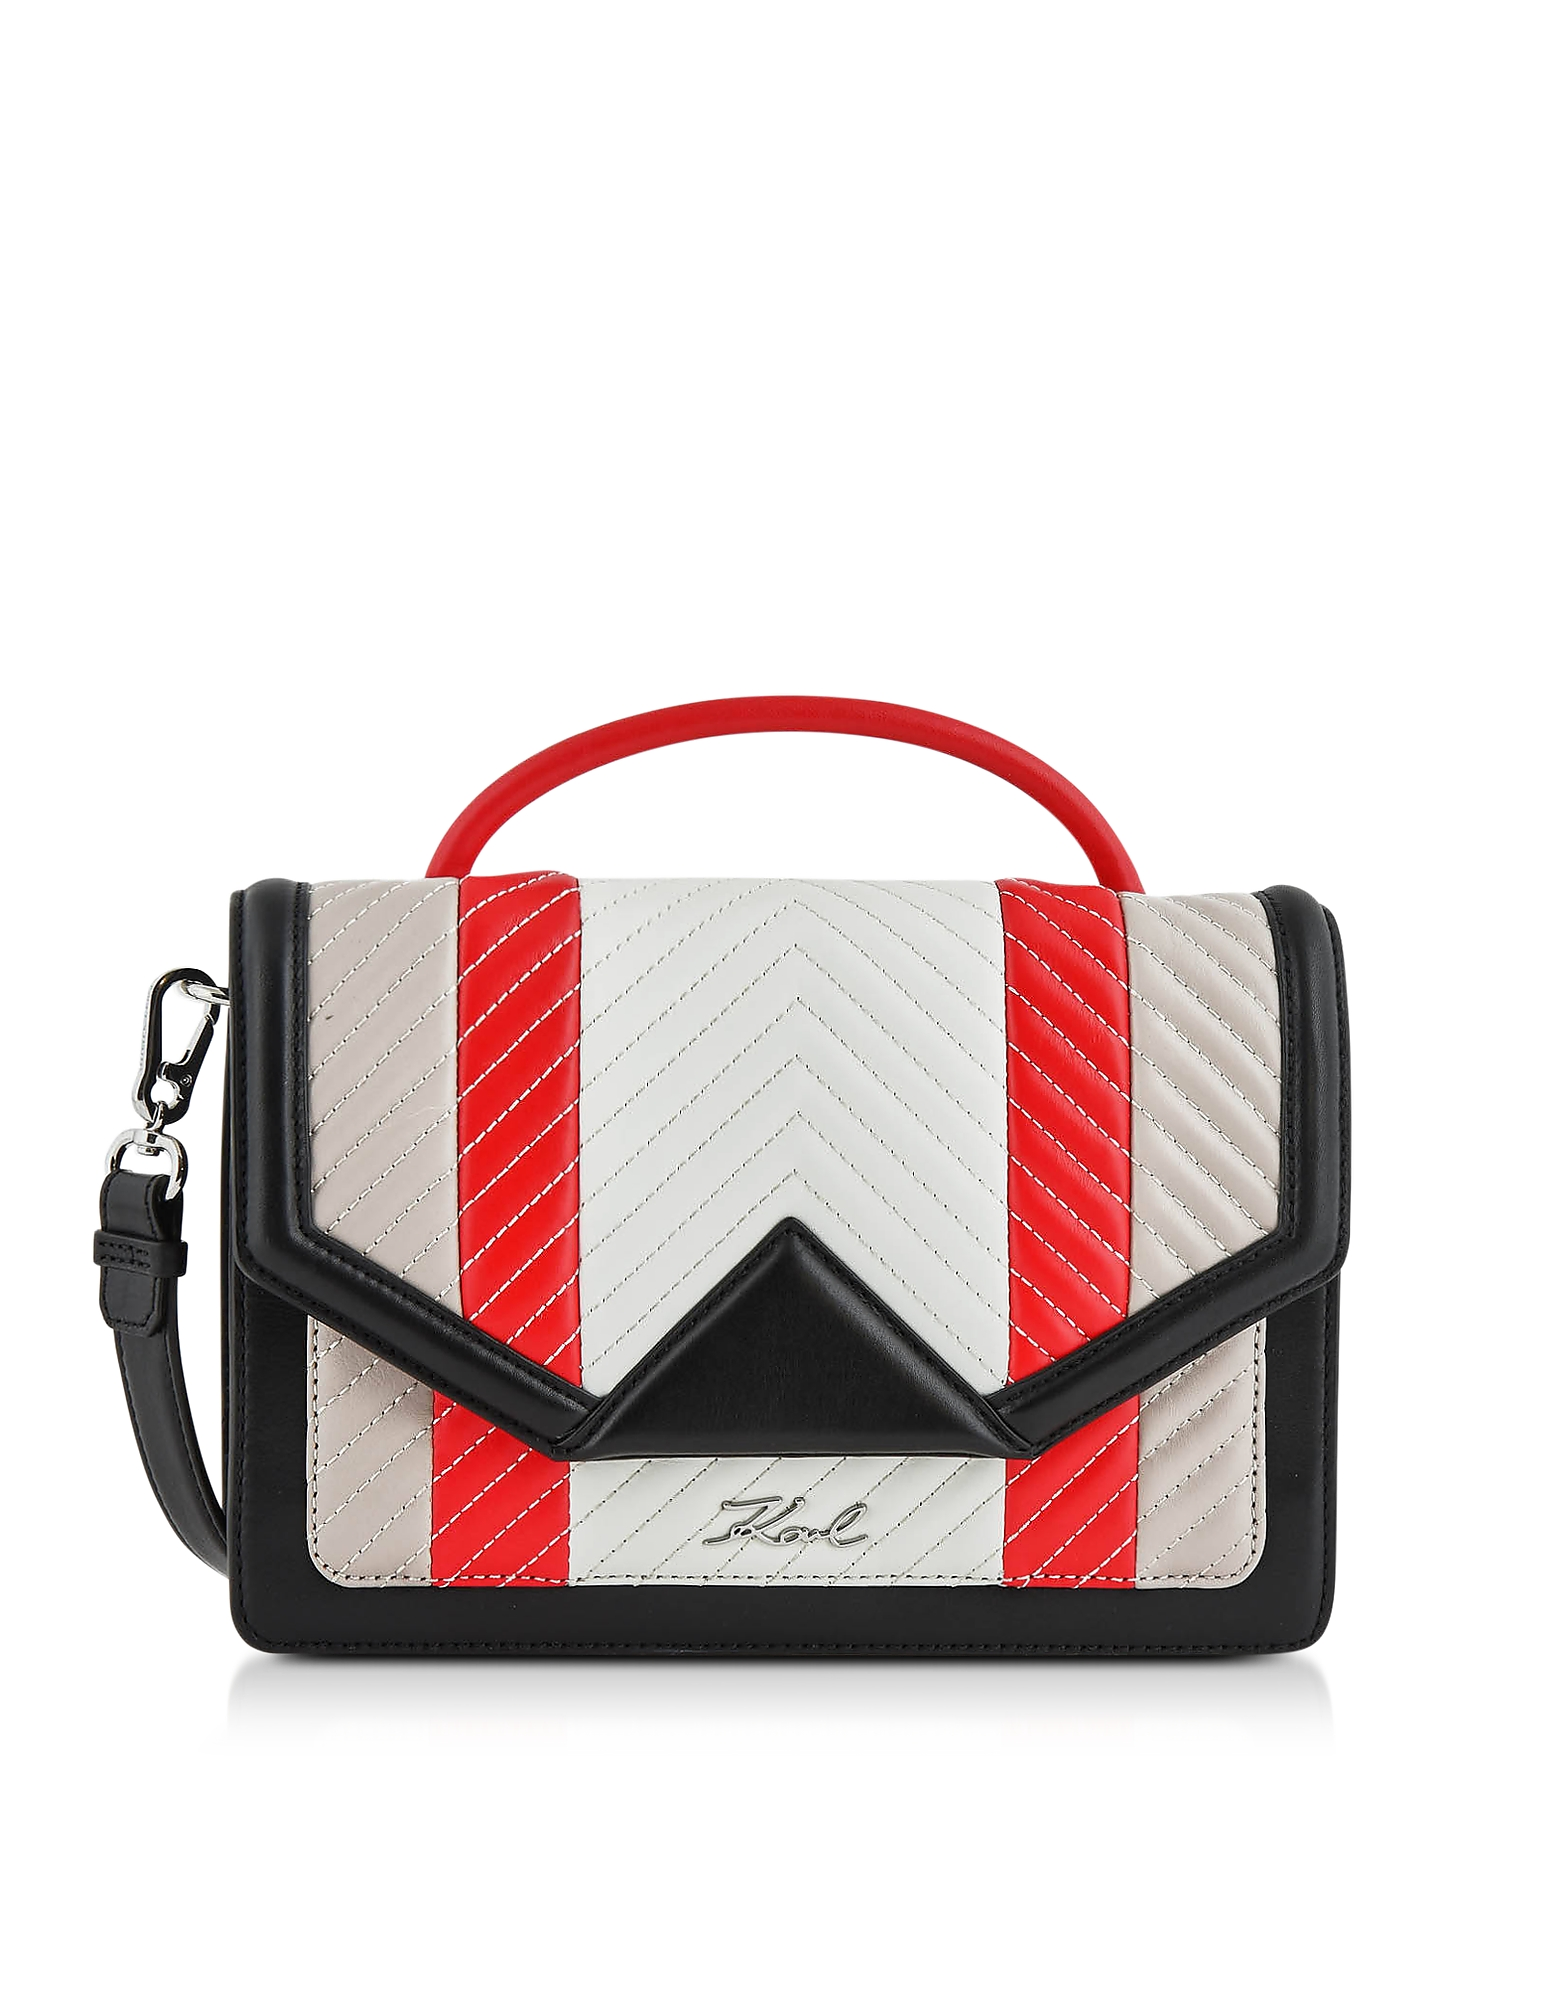 K/Klassic Multicolor Quilted Leather Shoulder Bag